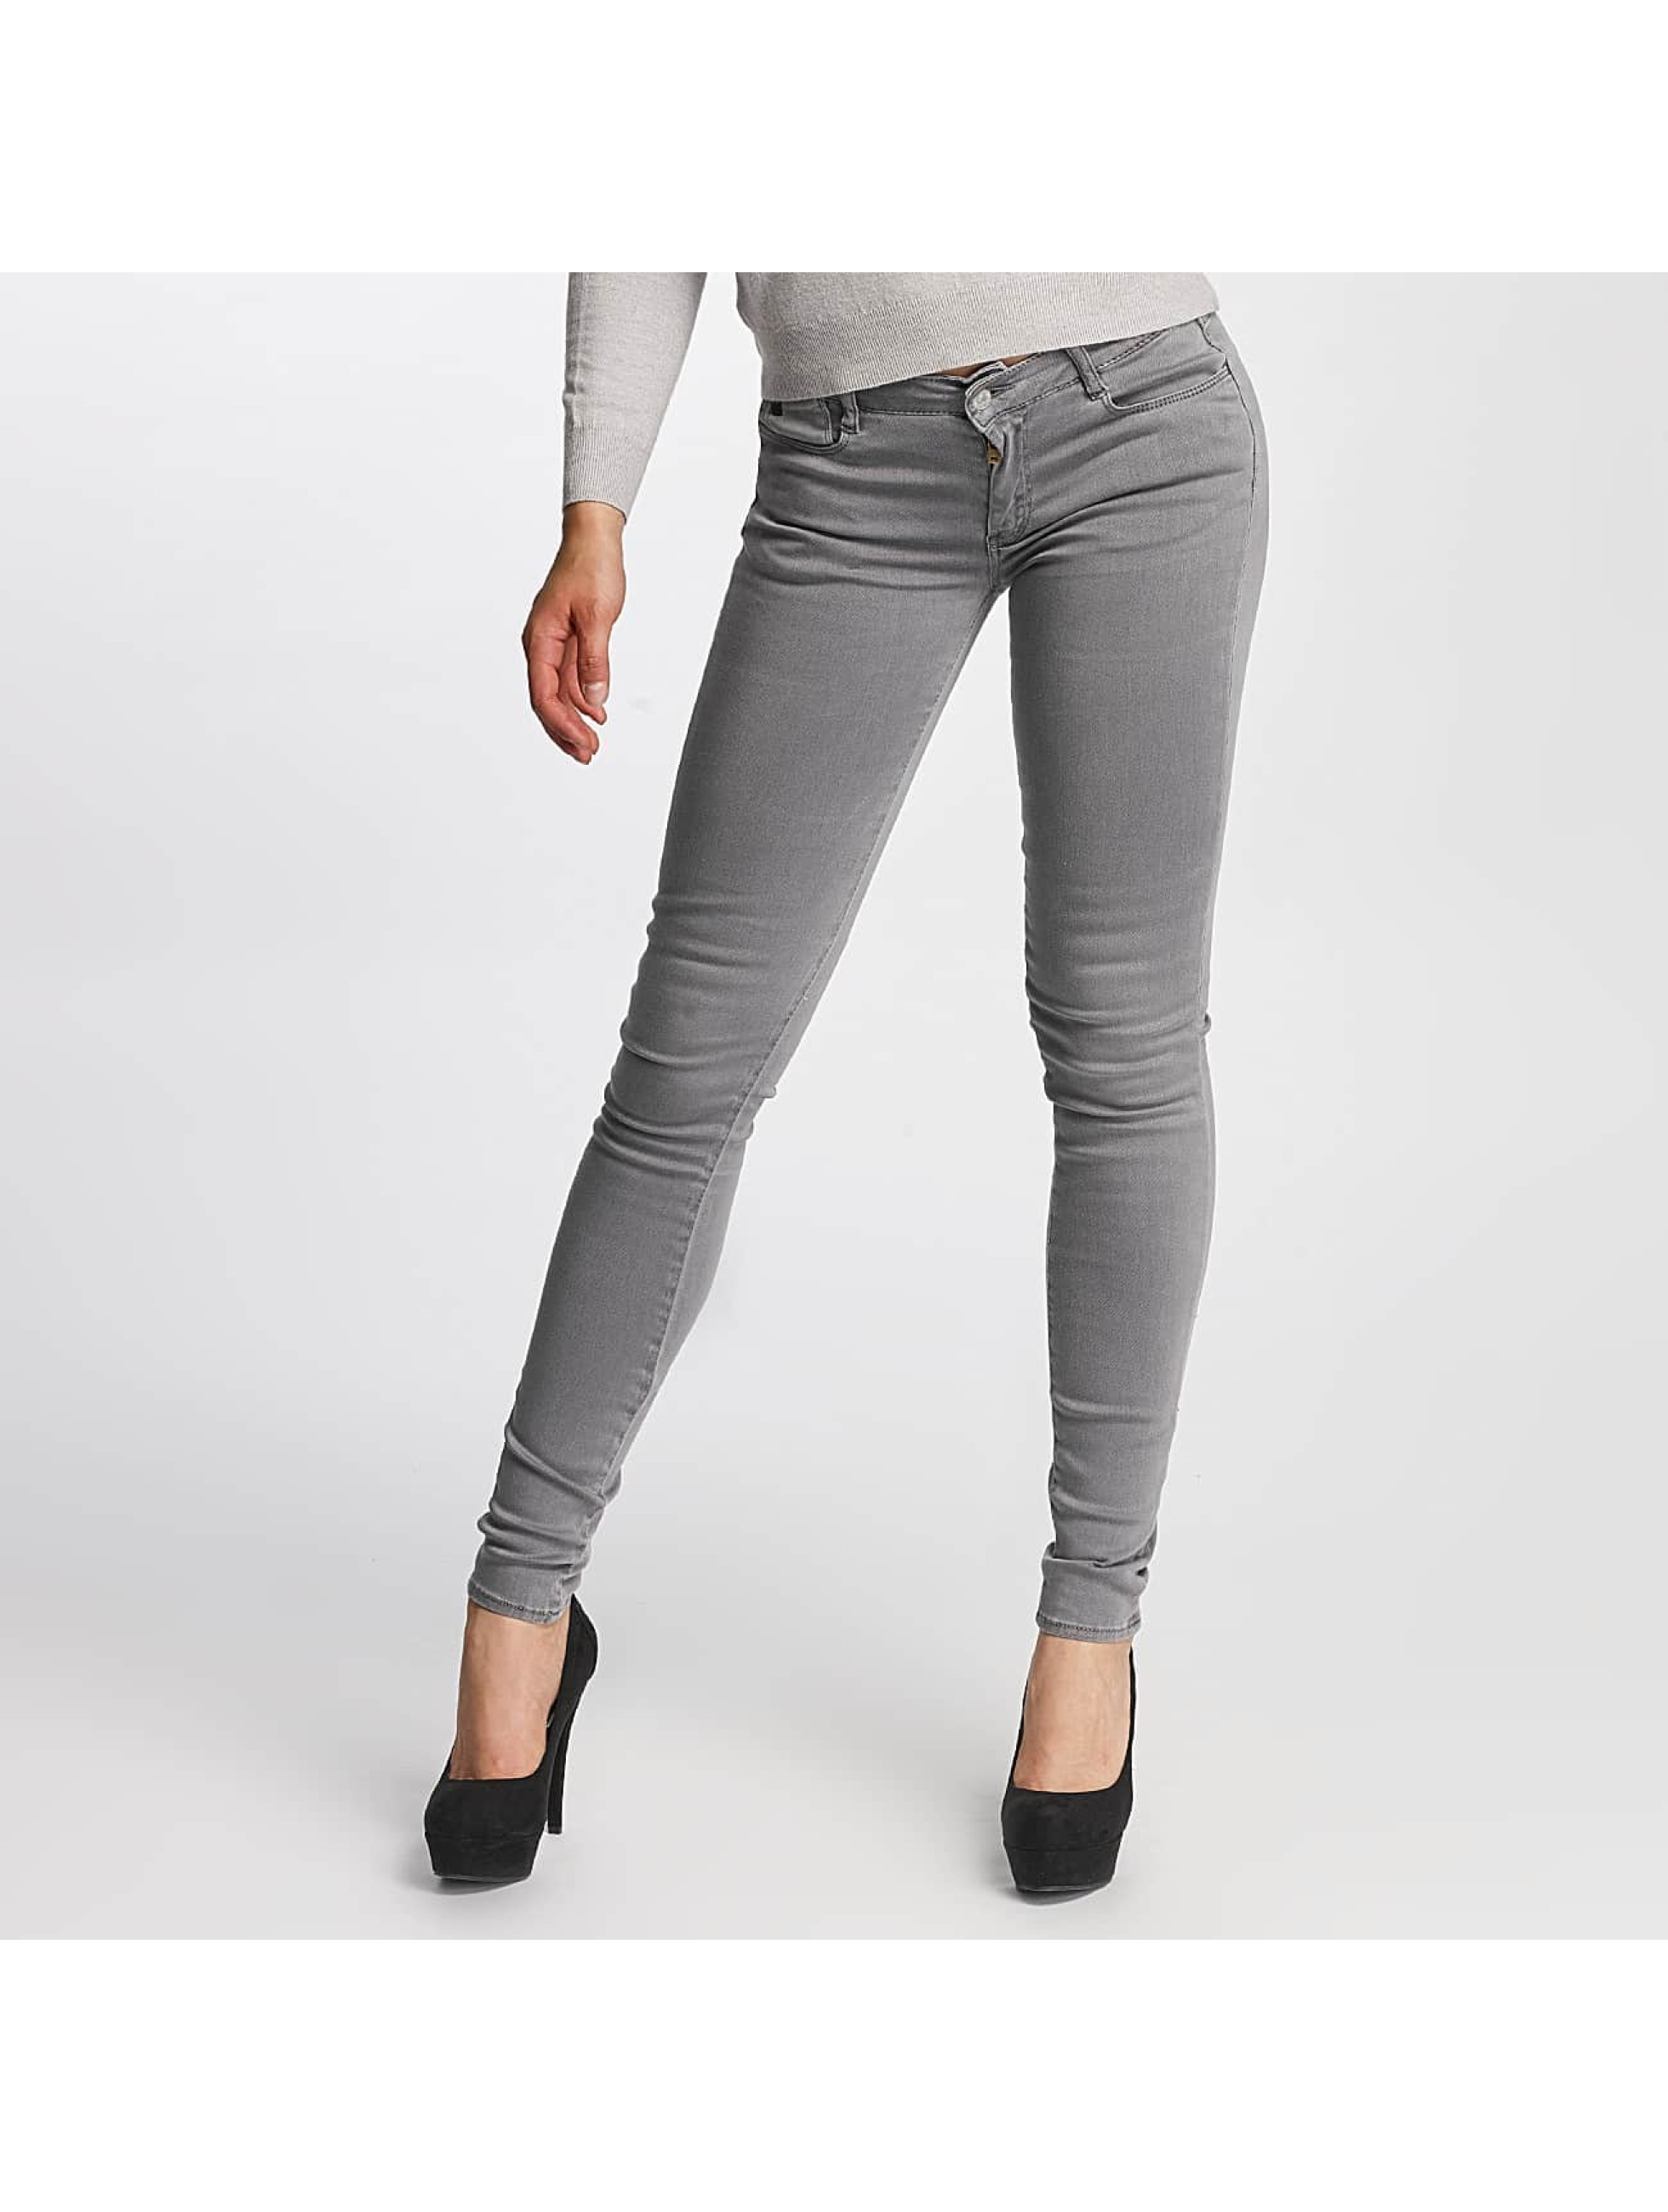 Le Temps Des Cerises Frauen Slim Fit Jeans Ultrapower in grau